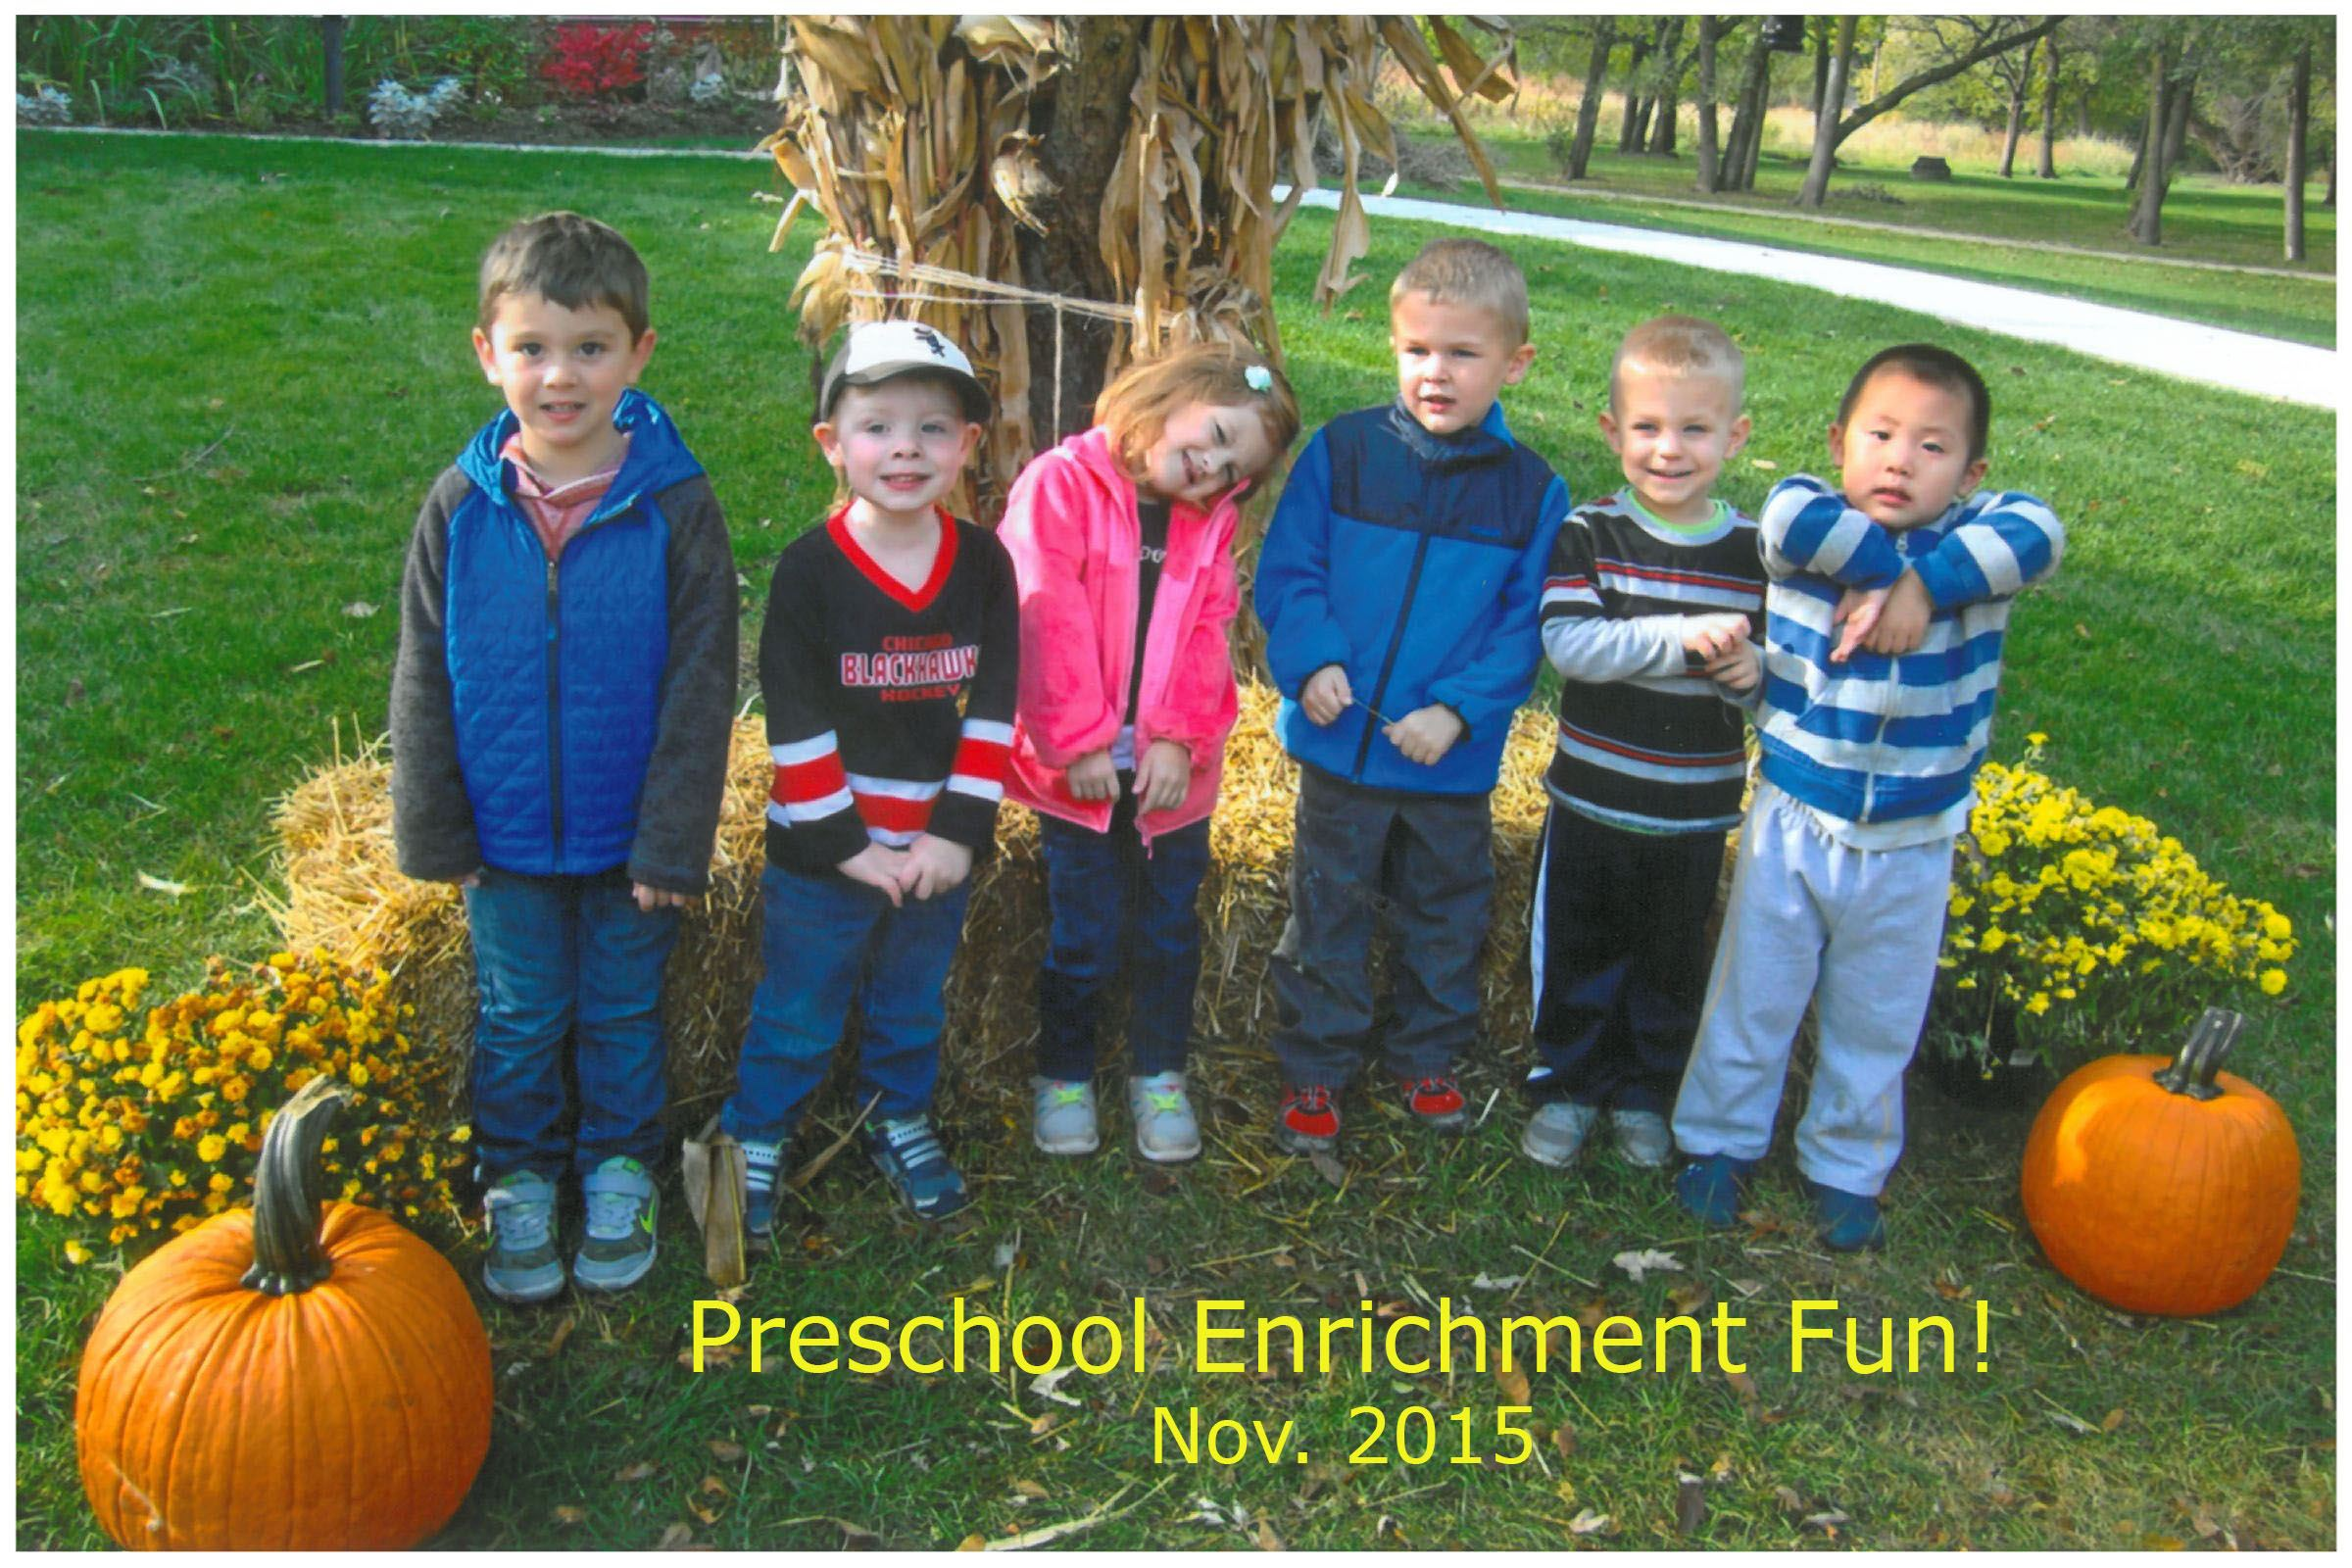 Preschool Enrichment photo 2015